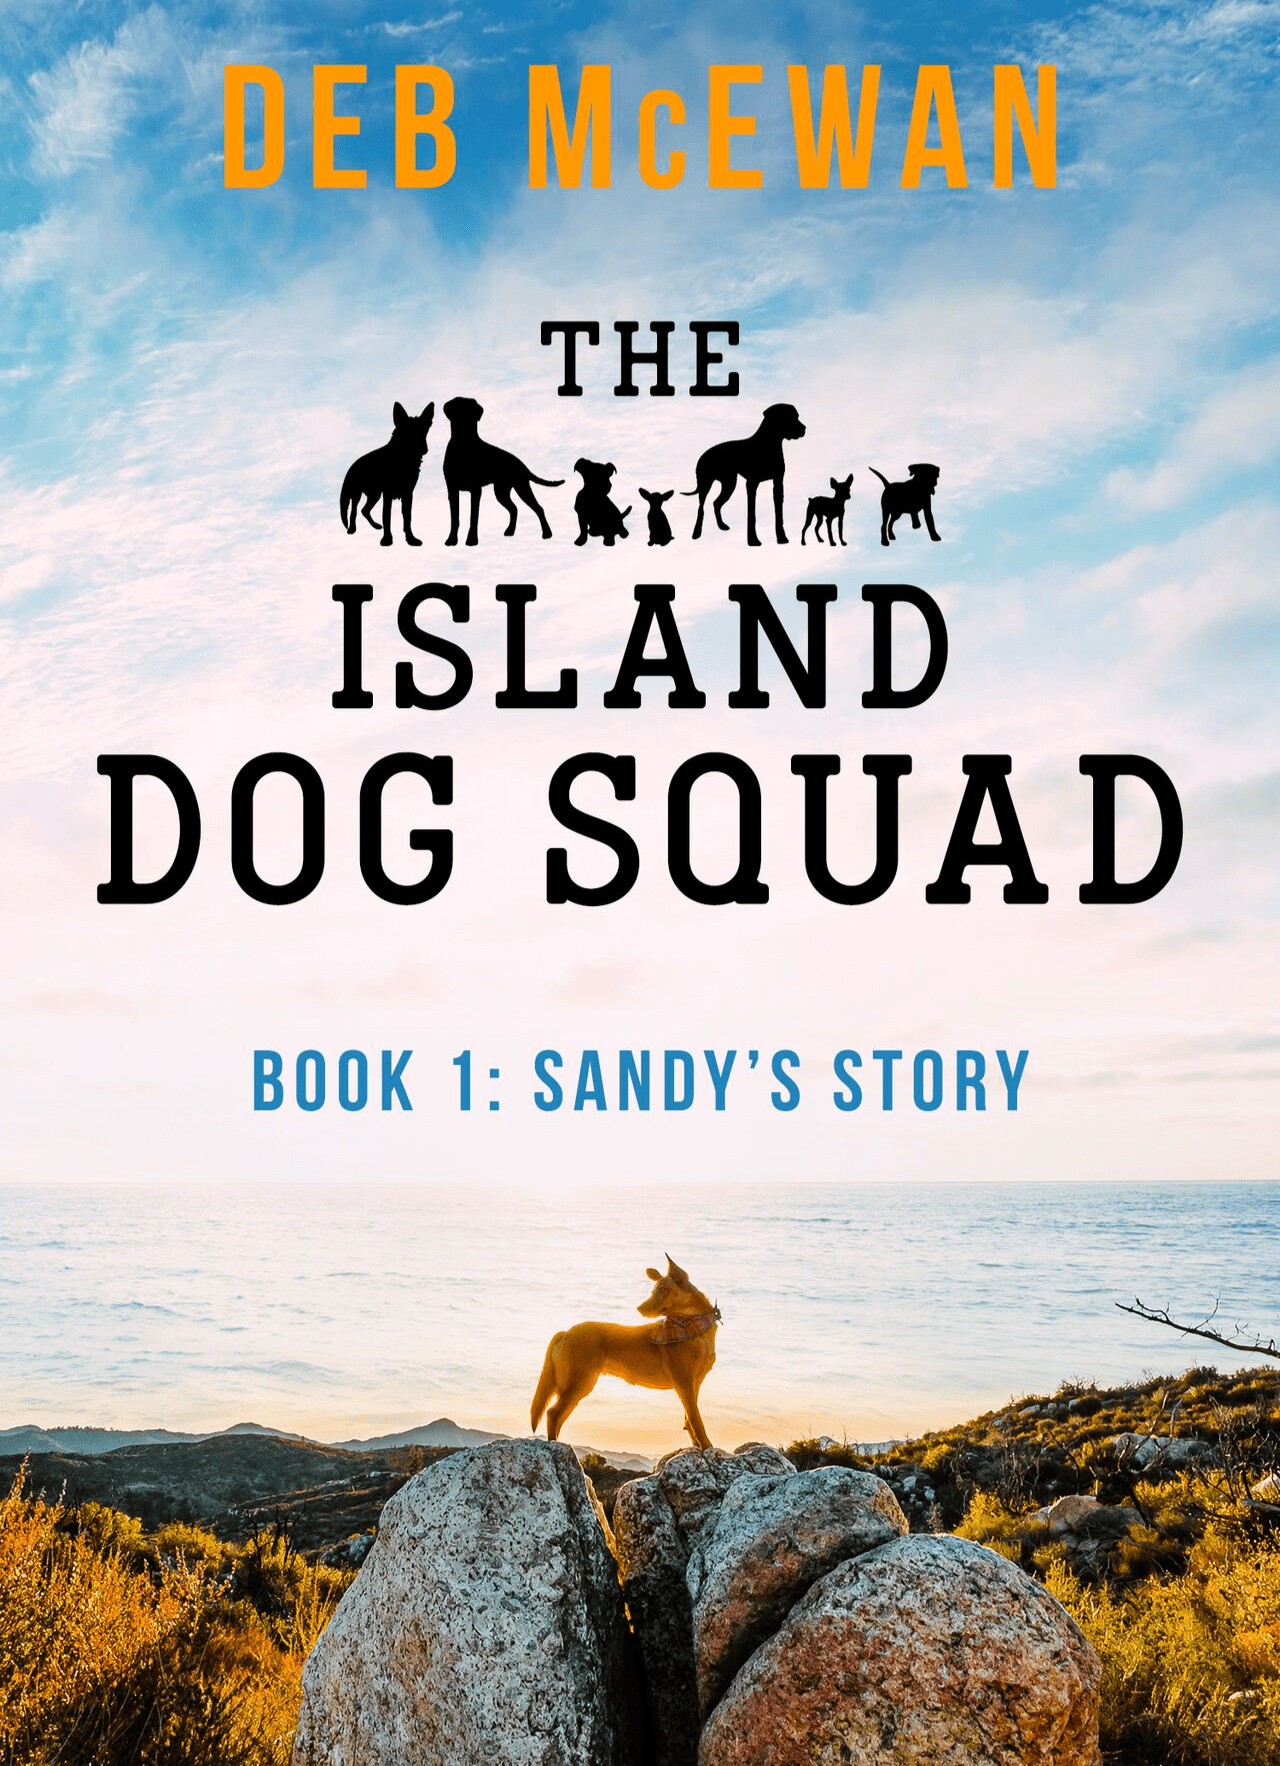 The Island Dog Squad (Book 1: Sandy's Story)